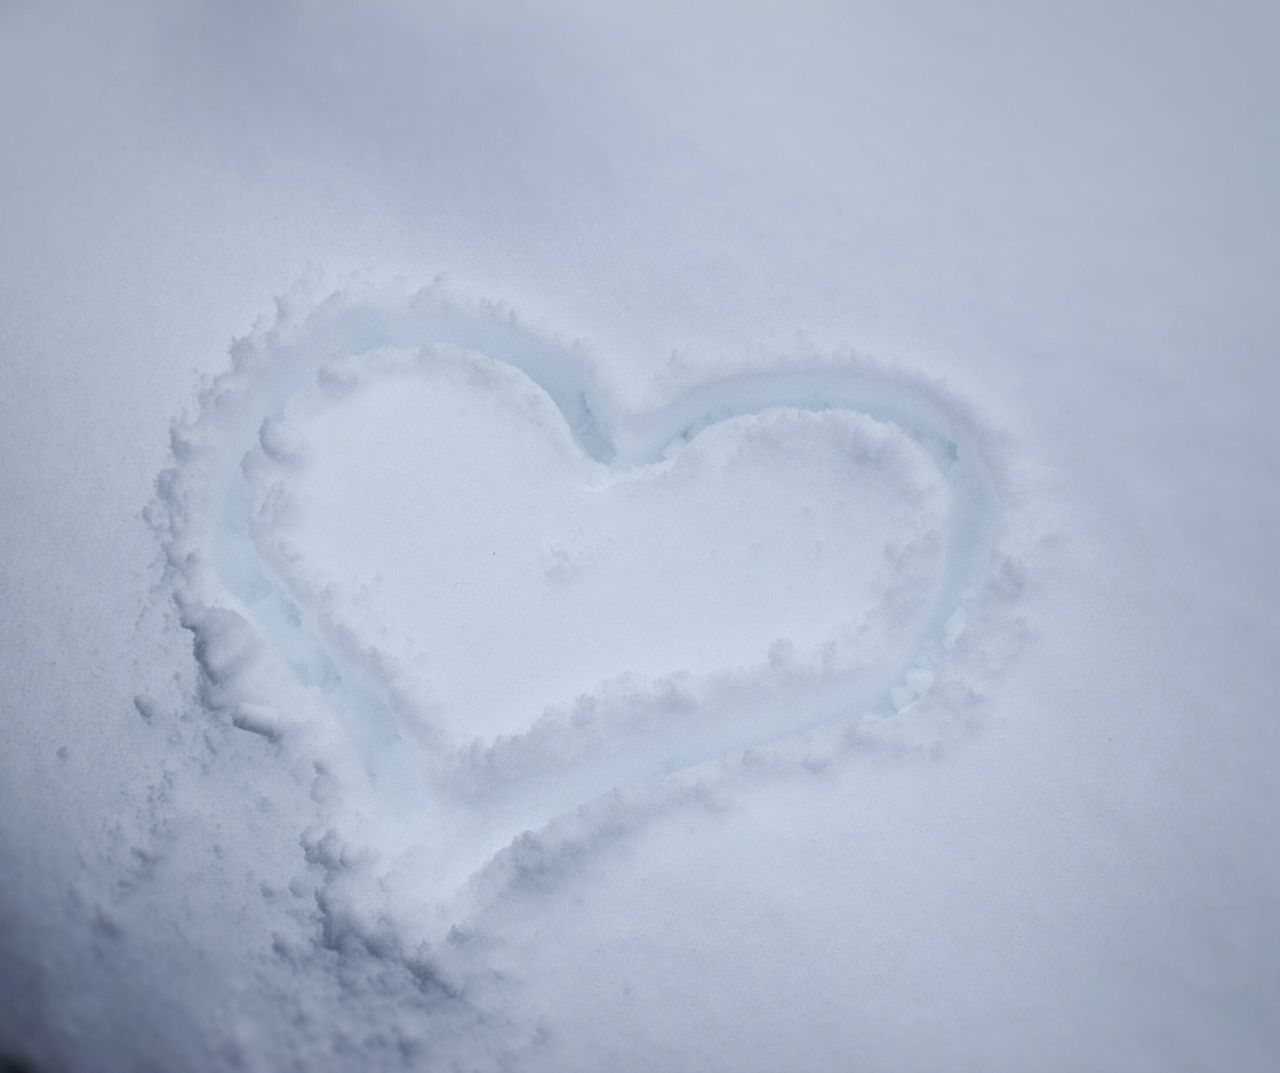 heart shape, white color, love, nature, beauty in nature, no people, winter, day, cold temperature, snow, outdoors, close-up